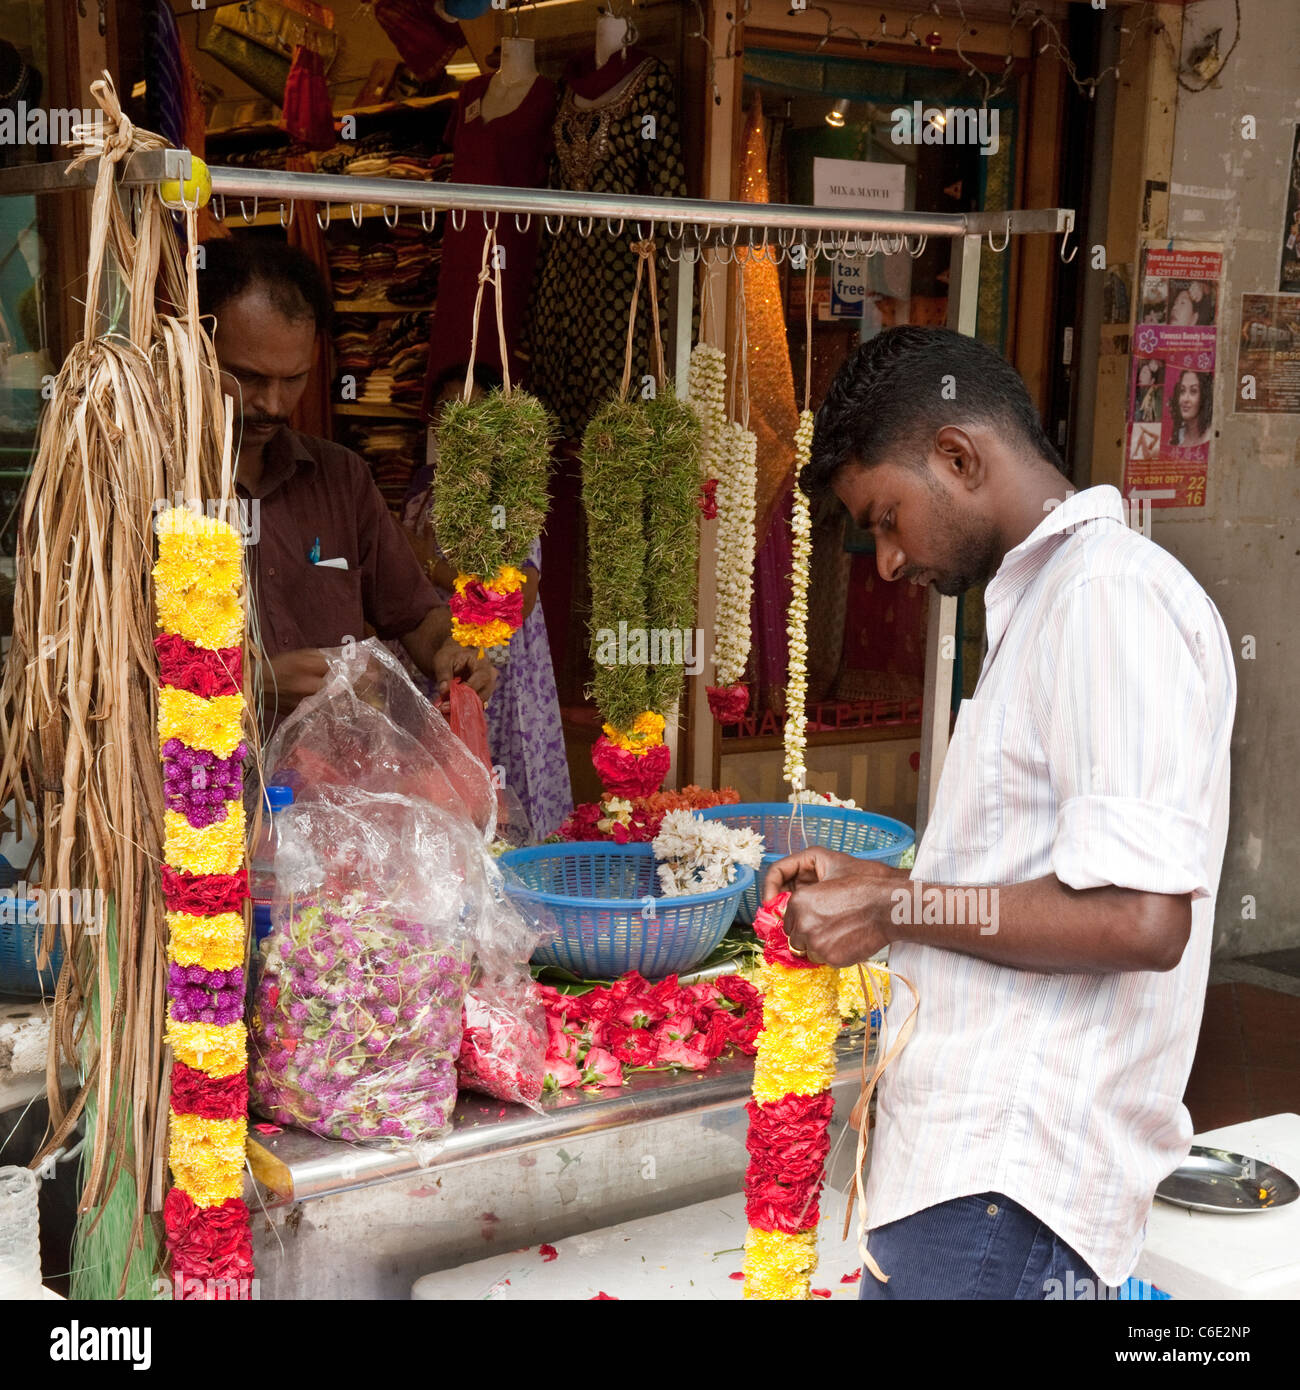 A shopkeeper making flower garlands, Little India, Singapore Asia - Stock Image